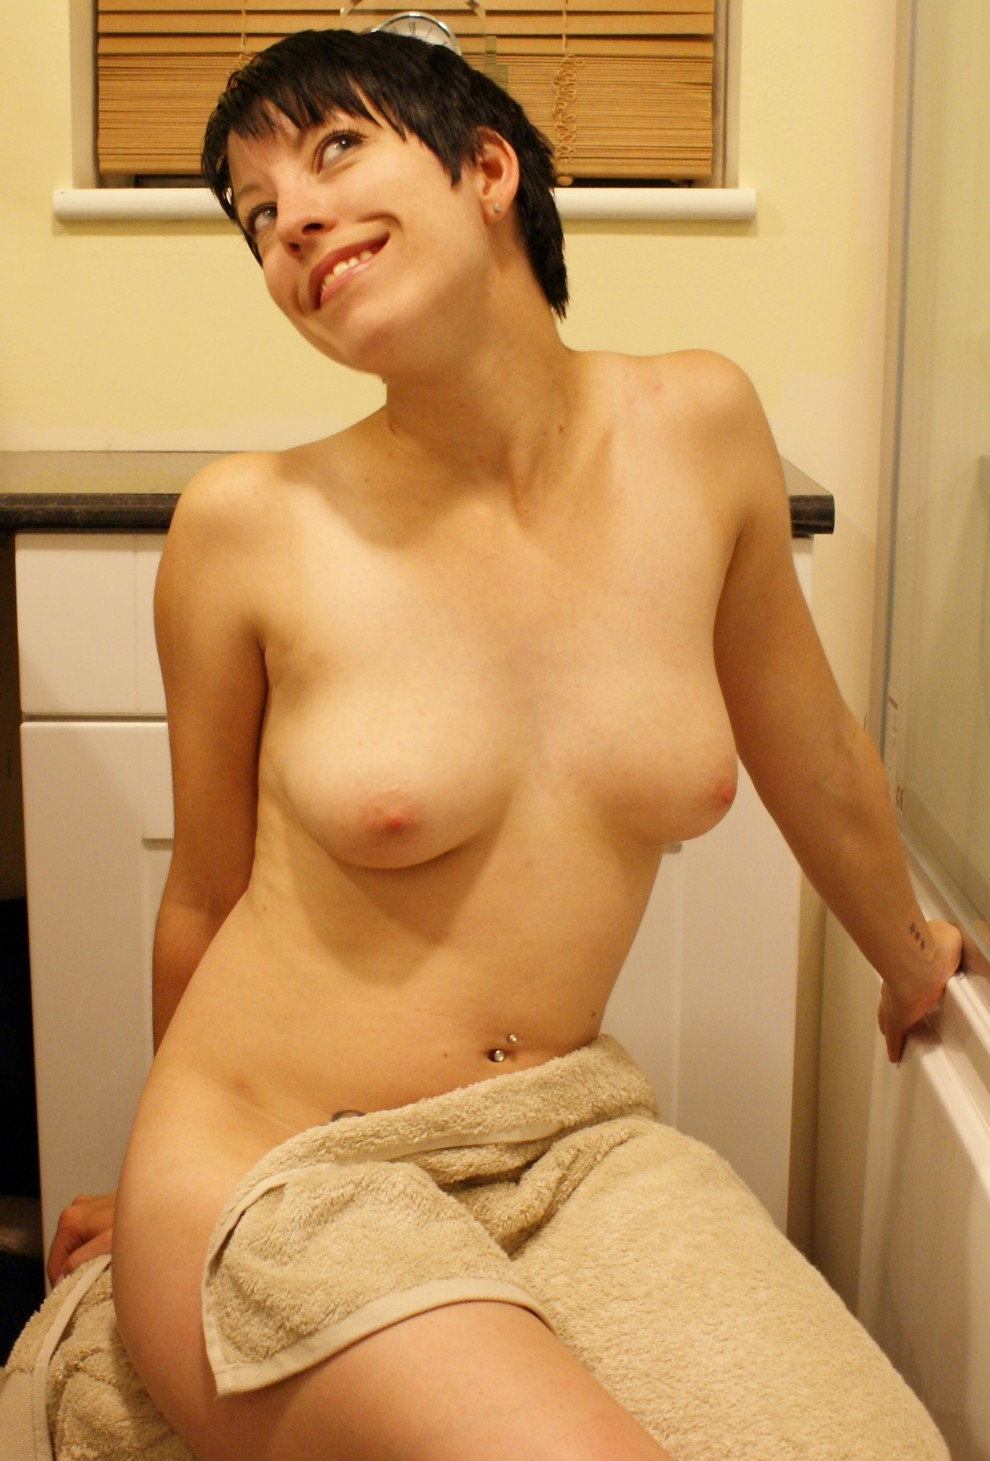 (f)lashing you my tits before getting in the tub :-)